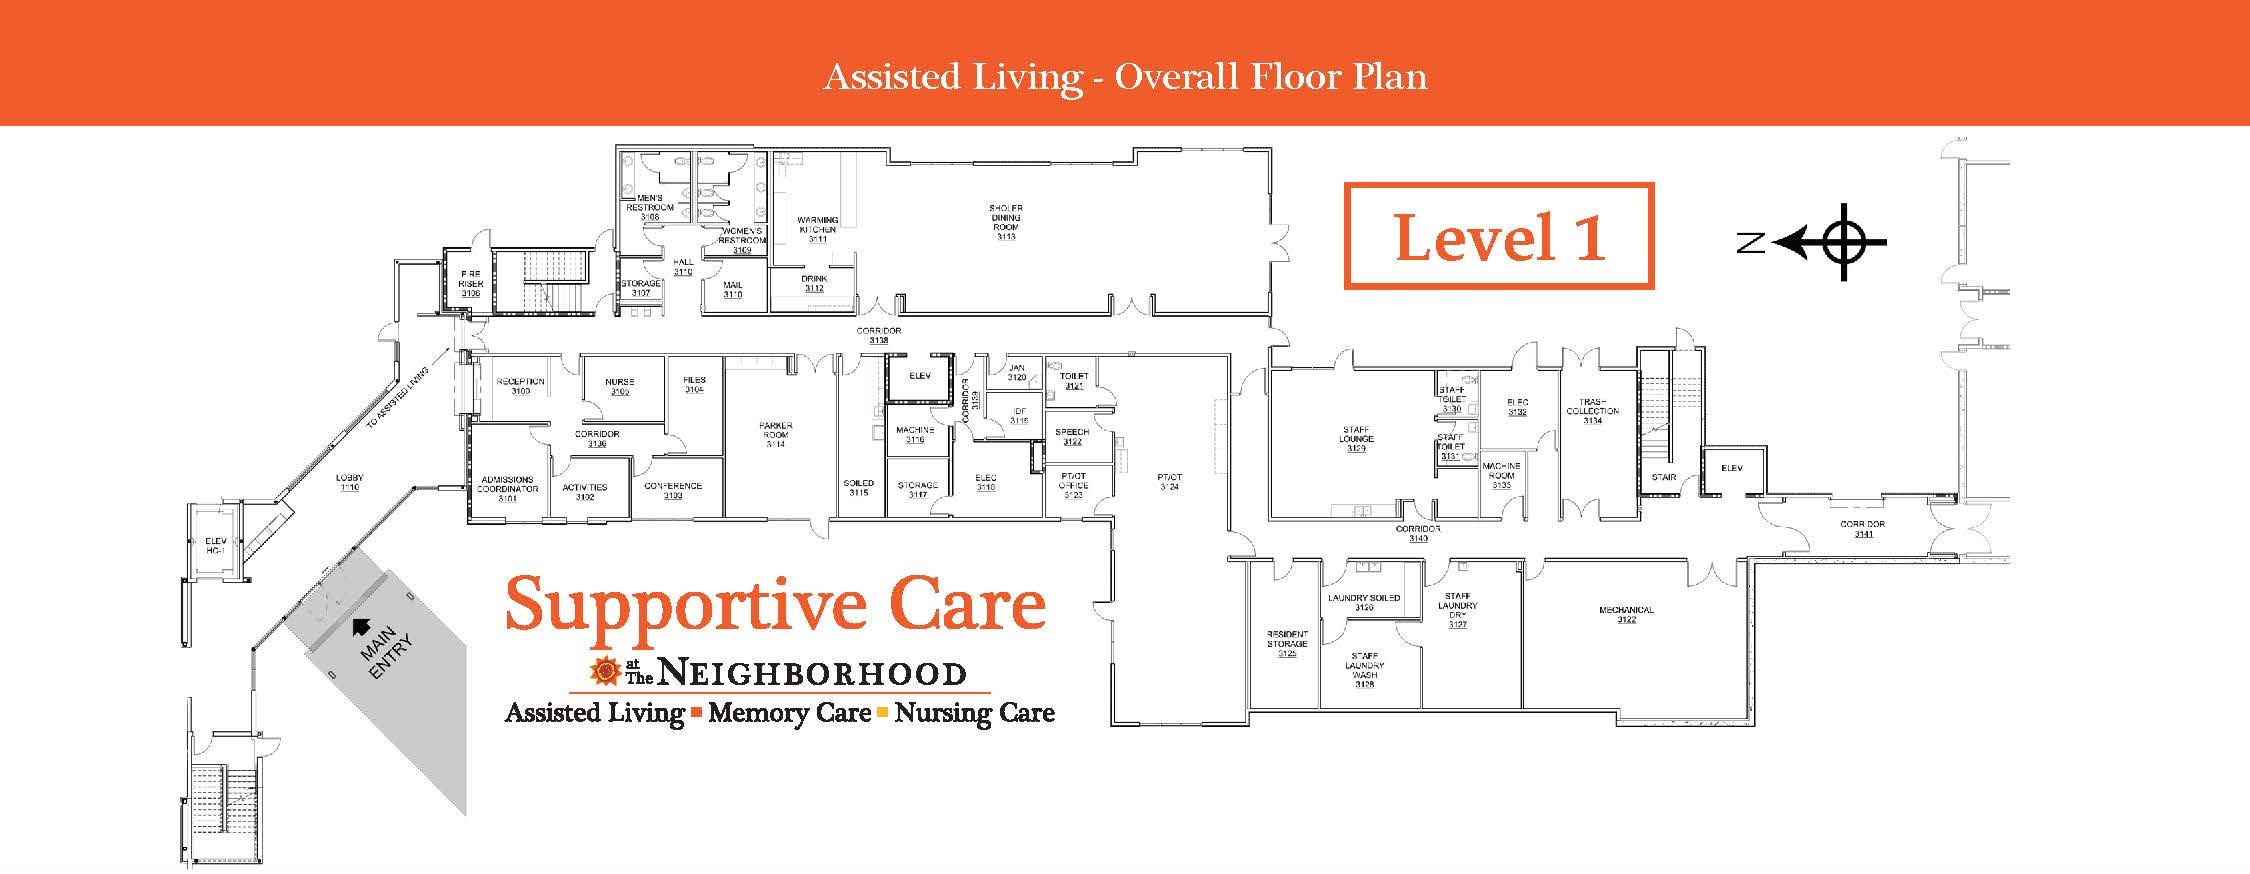 Assisted Living Level 1 Map